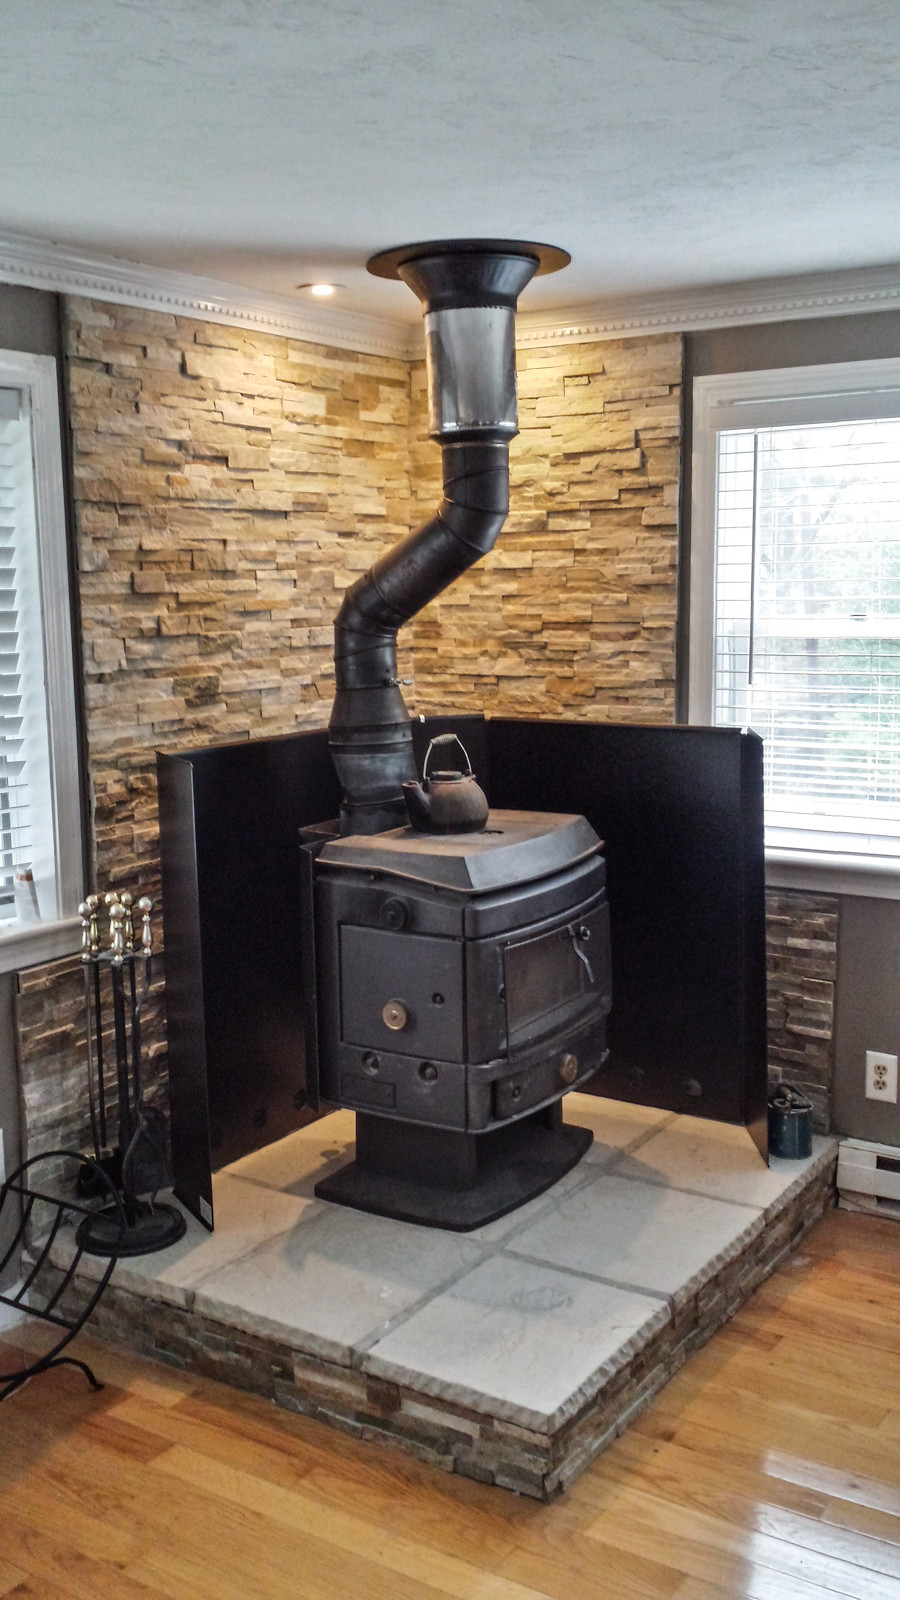 Awesome Wood Stove Installed With Heat Shield